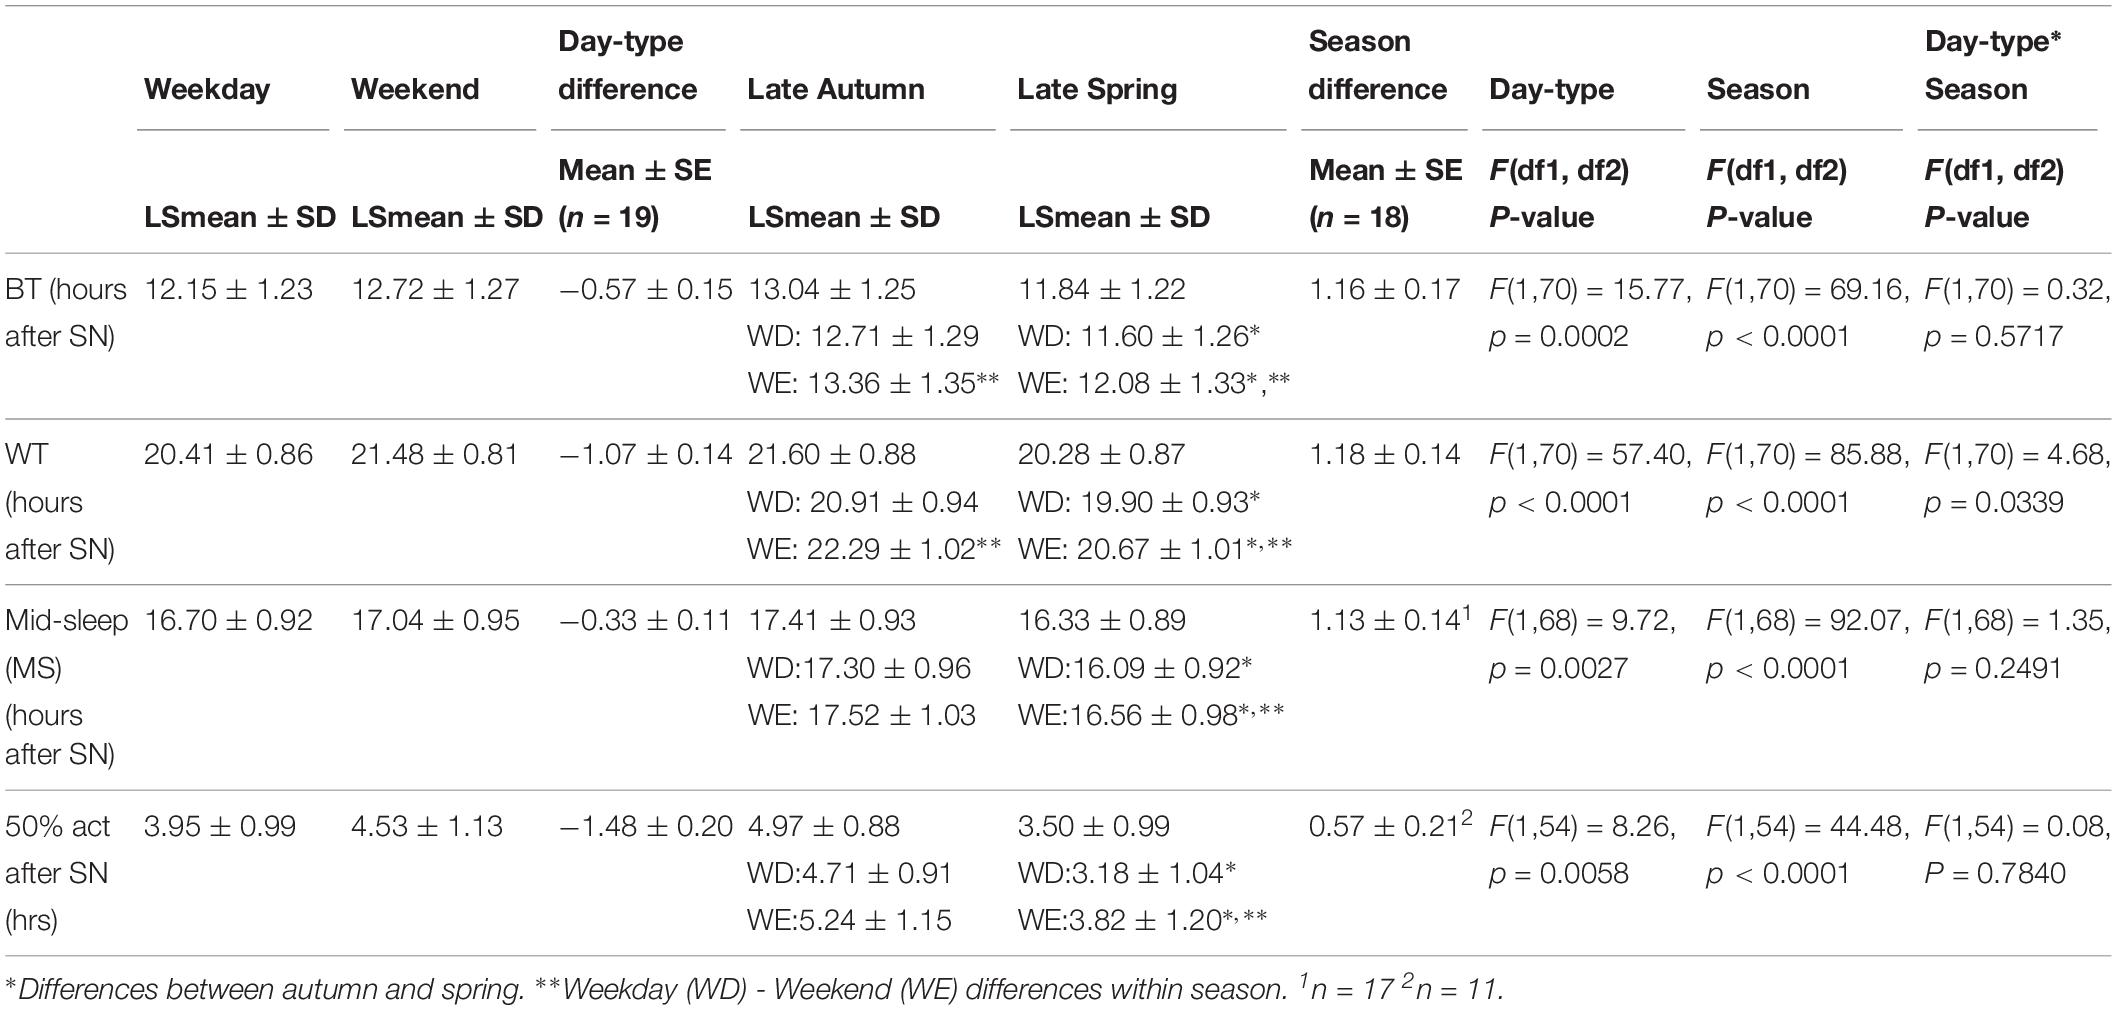 Frontiers | Sleep Timing in Late Autumn and Late Spring